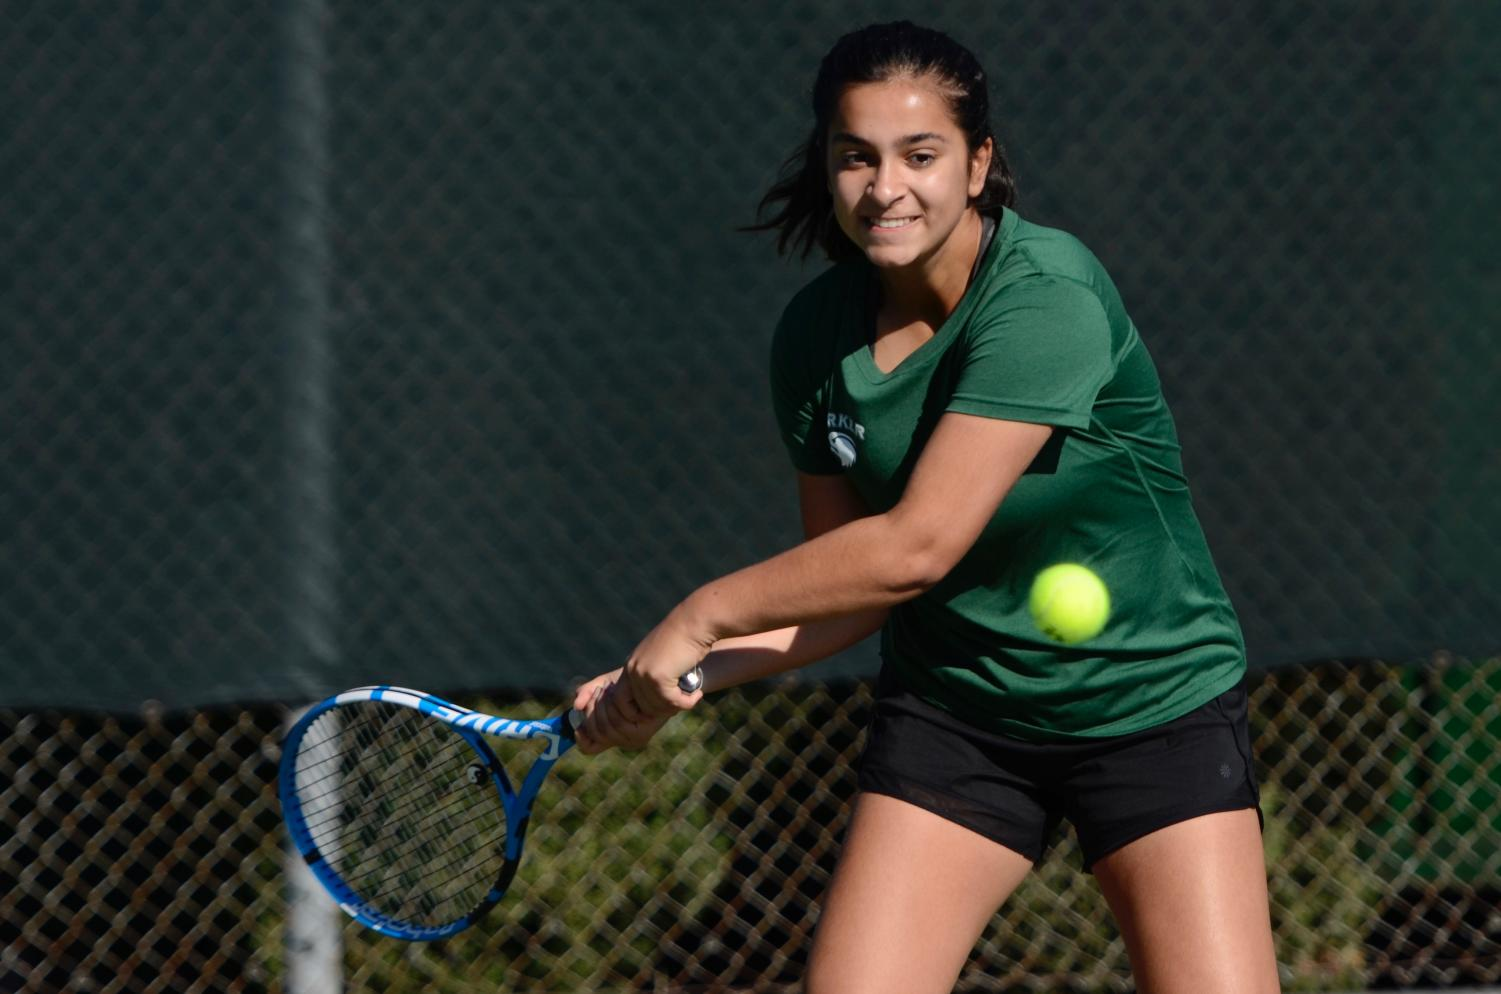 Anushka Mehrotra (9) prepares to hit the ball during her singles match in CCS semifinals. After an impressive performance this season, the girls tennis team lost to St. Francis High School 5-2 on Saturday, Nov. 16